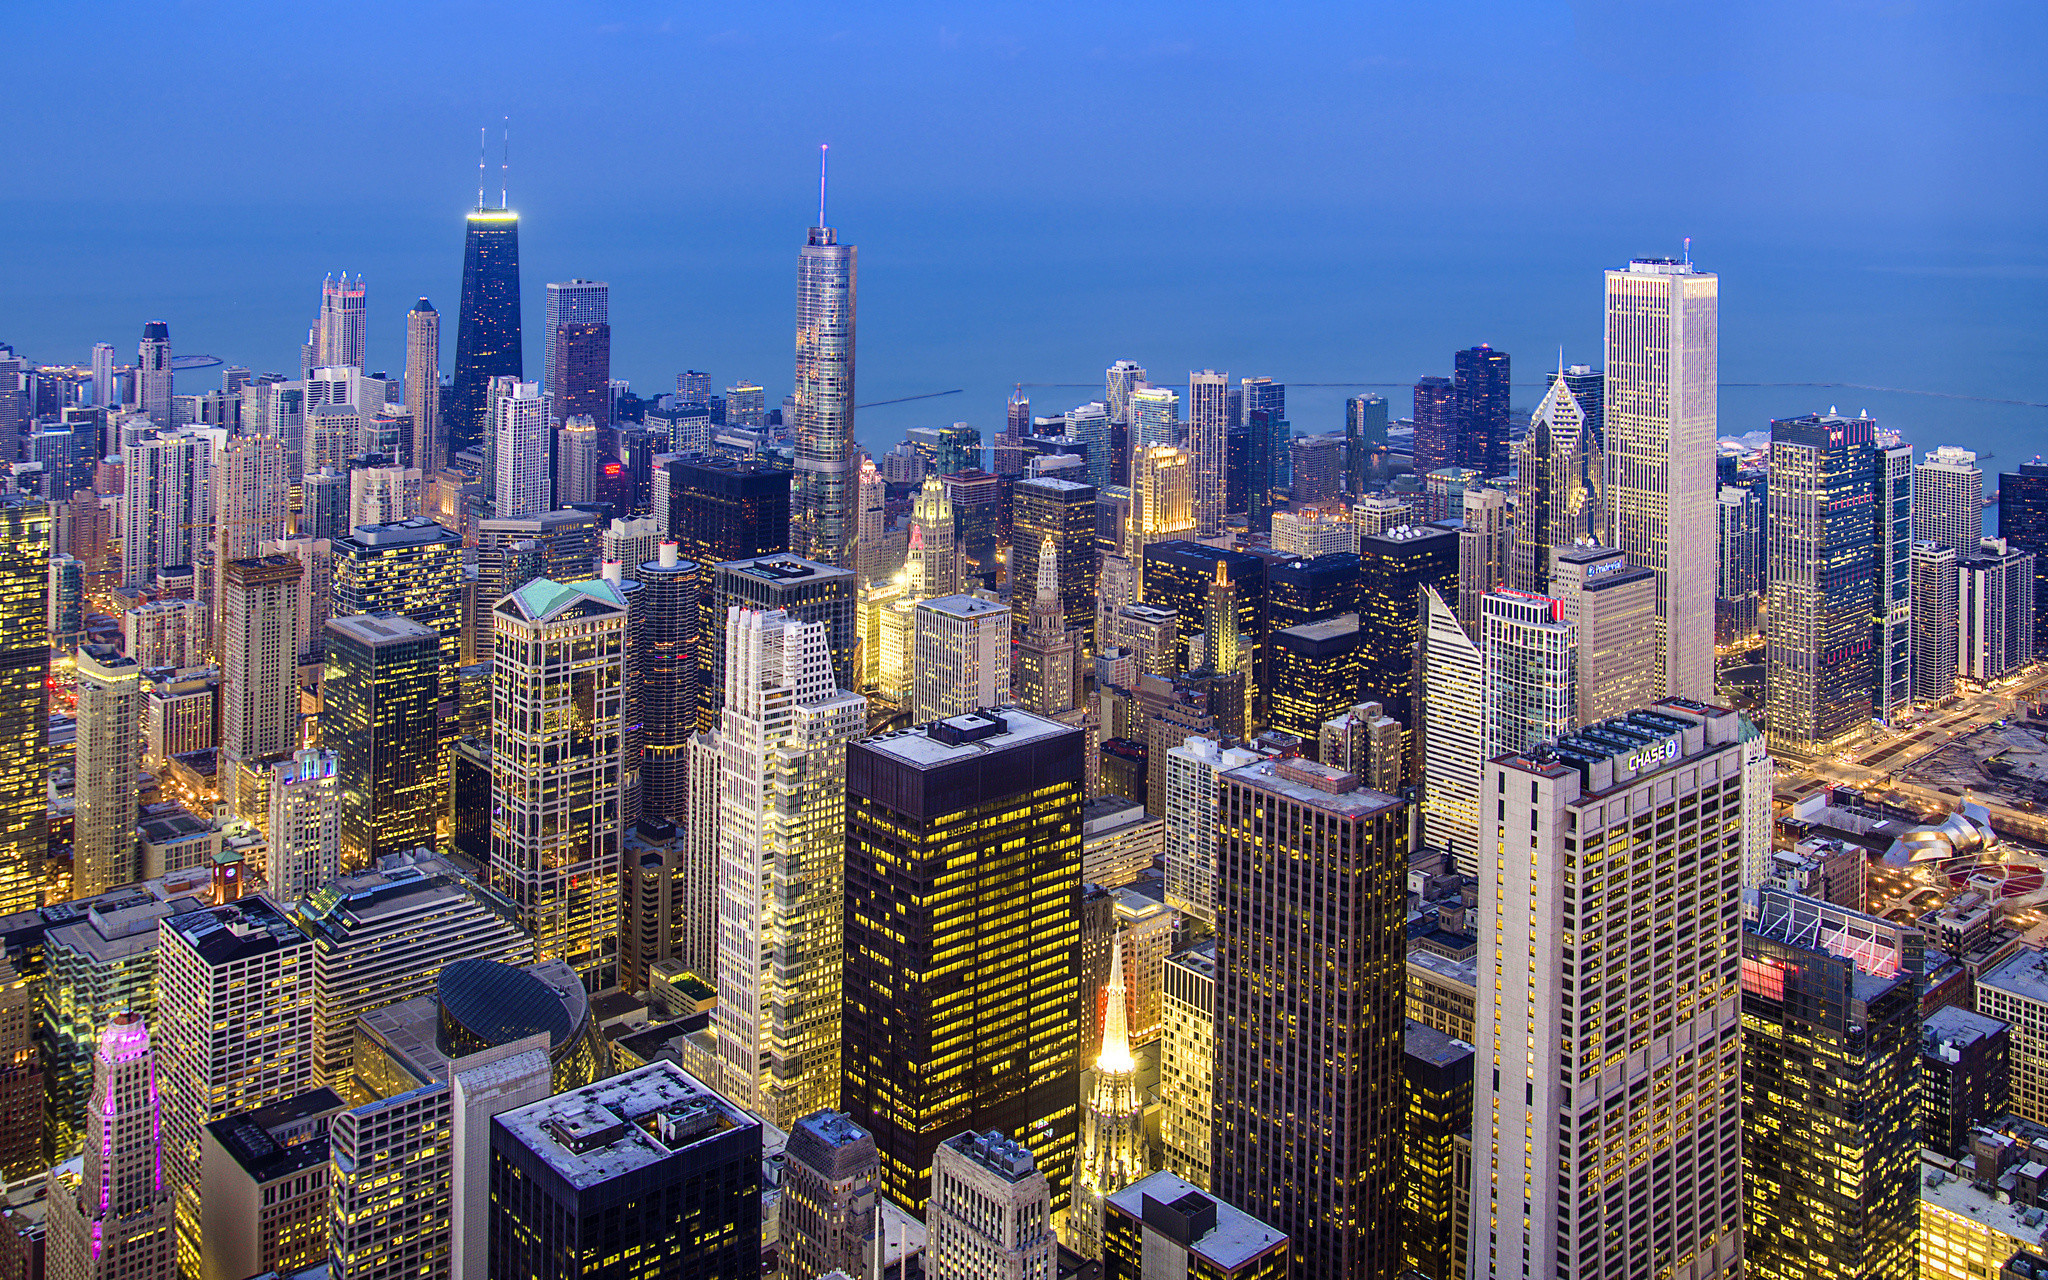 2048x1280 illinois landscape wallpapers Chicago Wallpapers For Mobile And Desktop In  HD